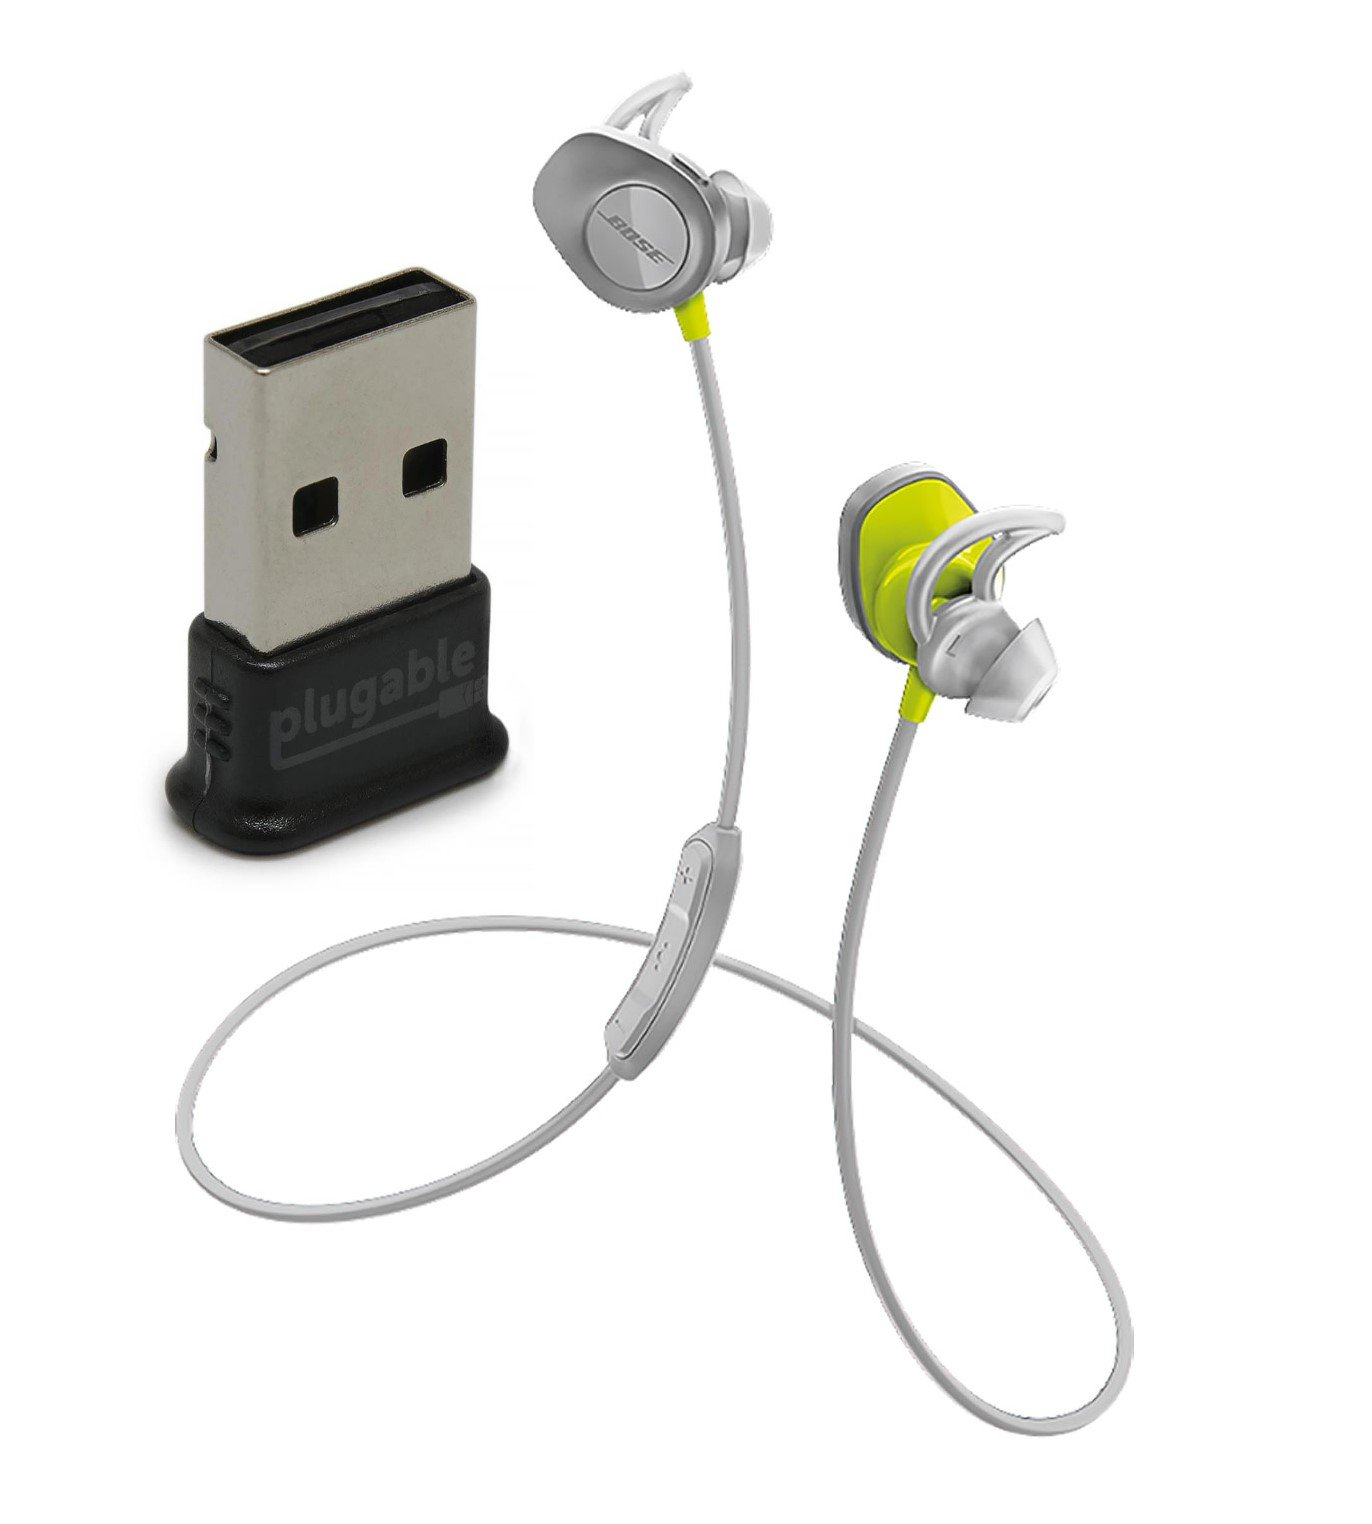 Bose SoundSport Wireless In-Ear Headphones, Citron, with Plugable USB 2.0 Bluetooth Adapter (USB-BT4LE) by Bose